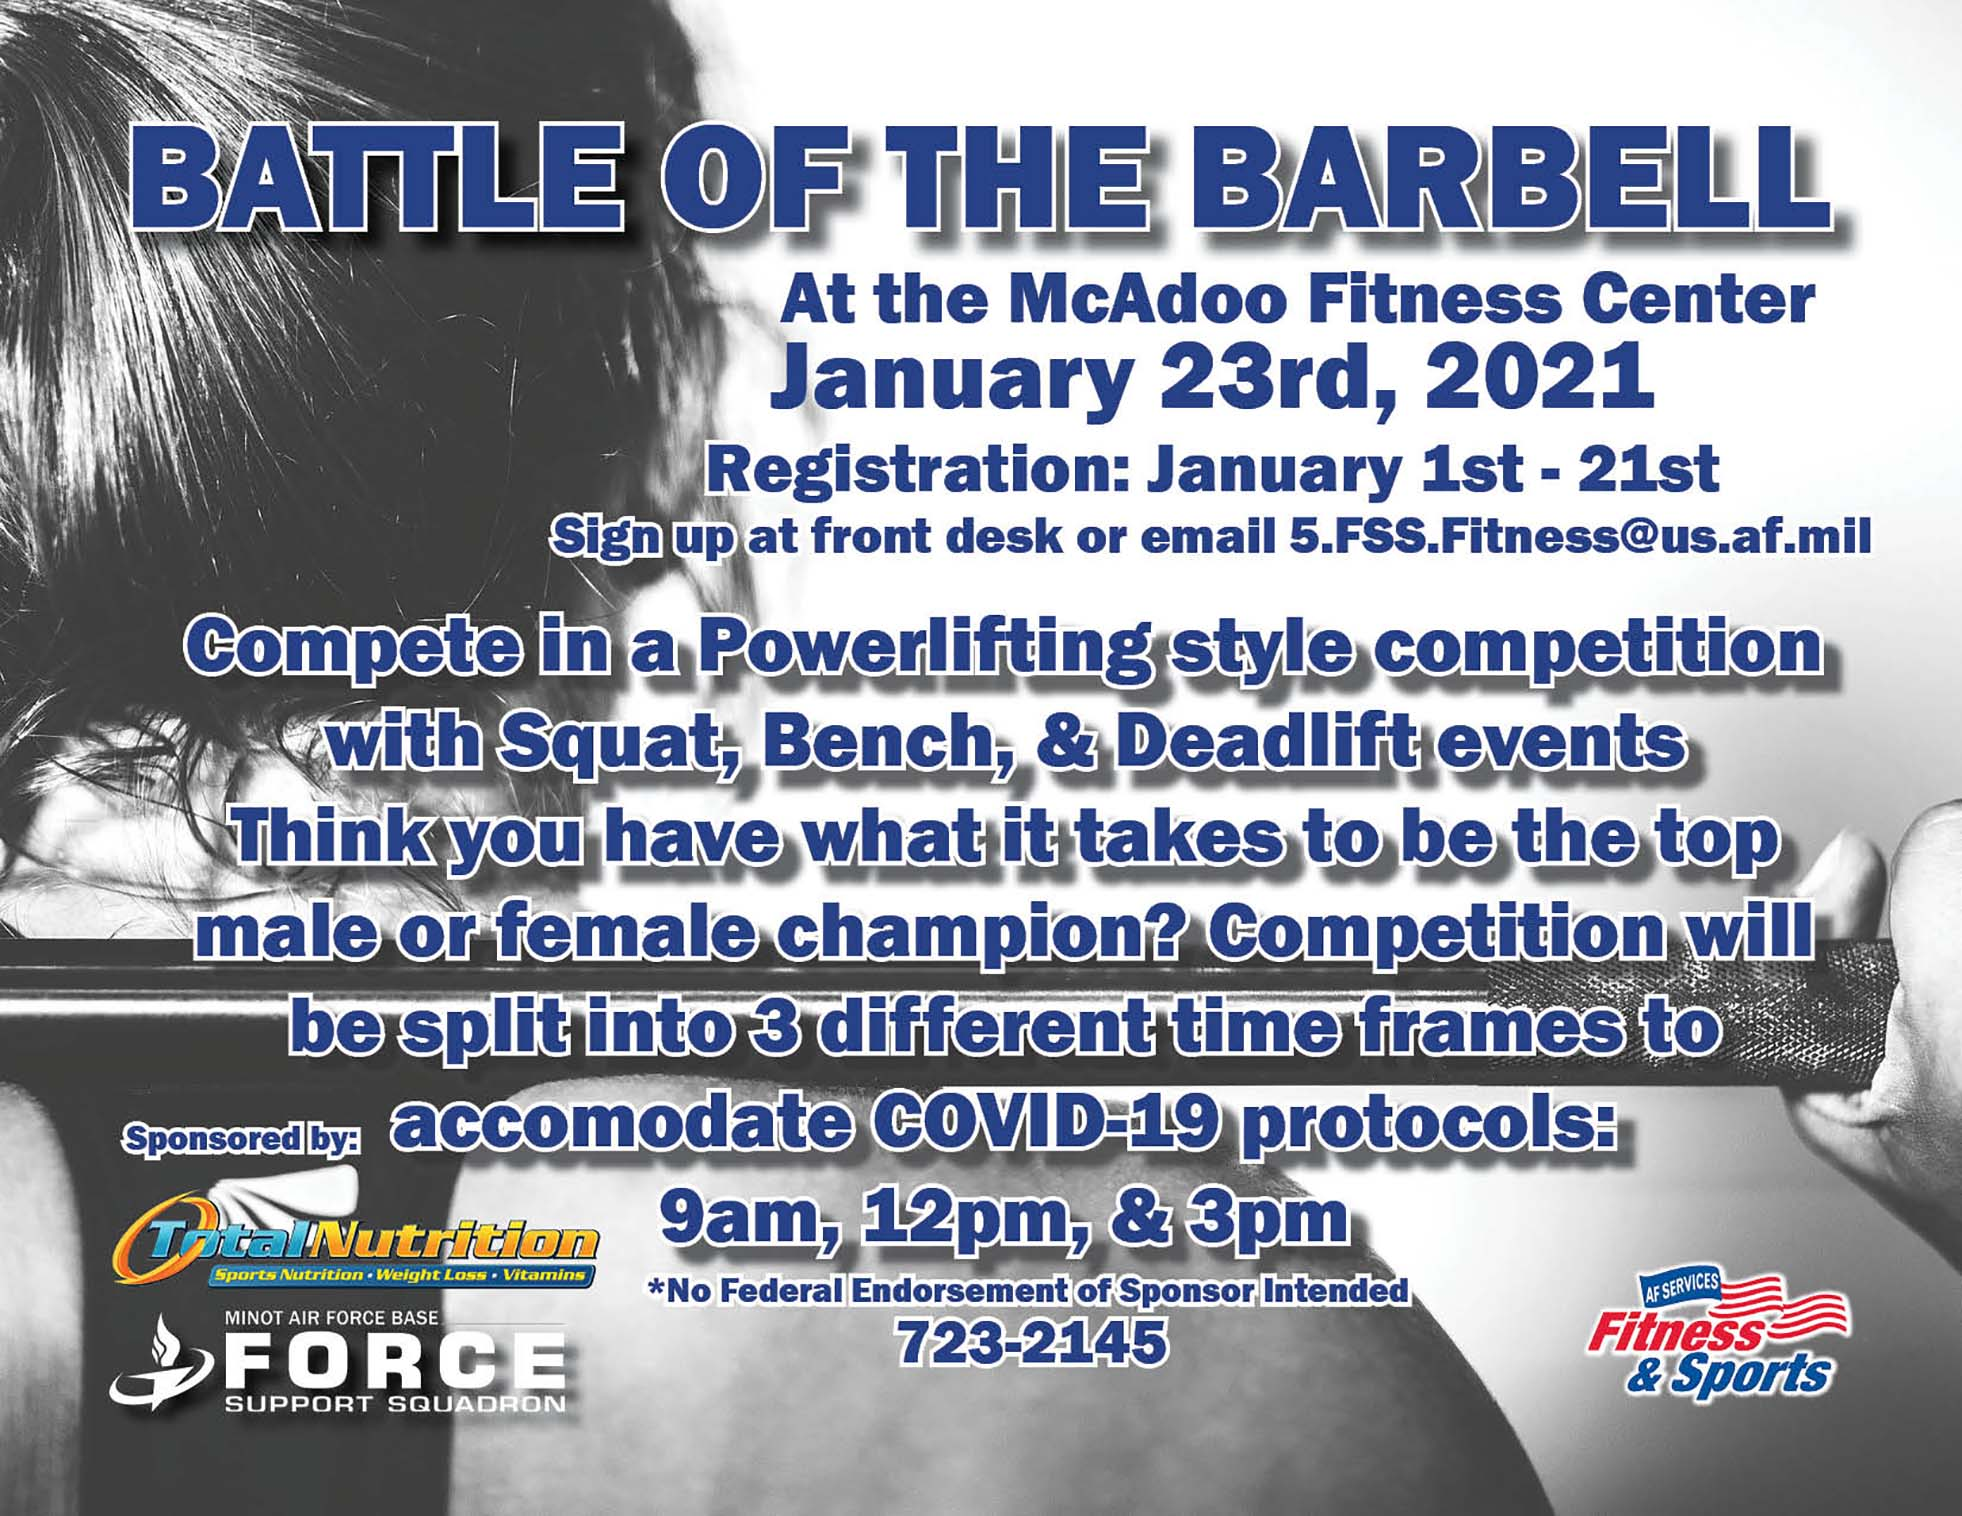 Battle of the Barbell